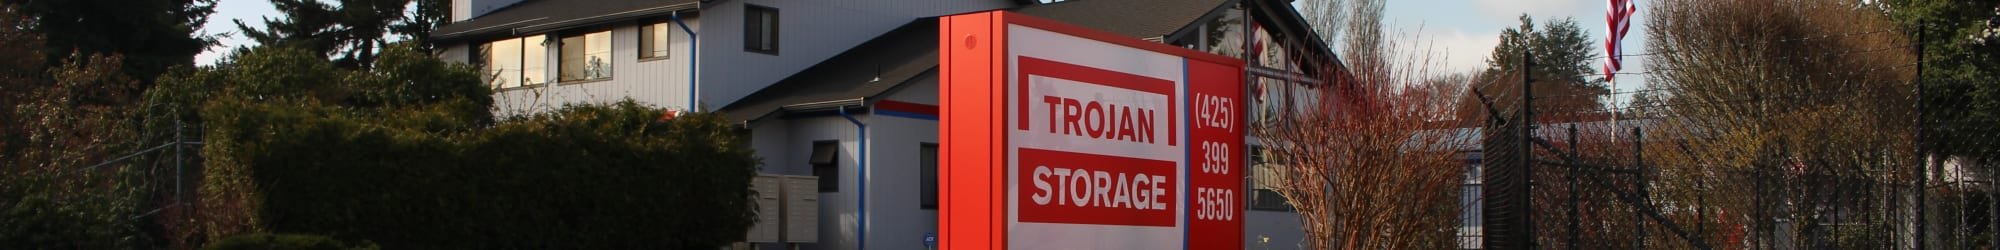 Hours and directions to Trojan Storage in Everett, Washington